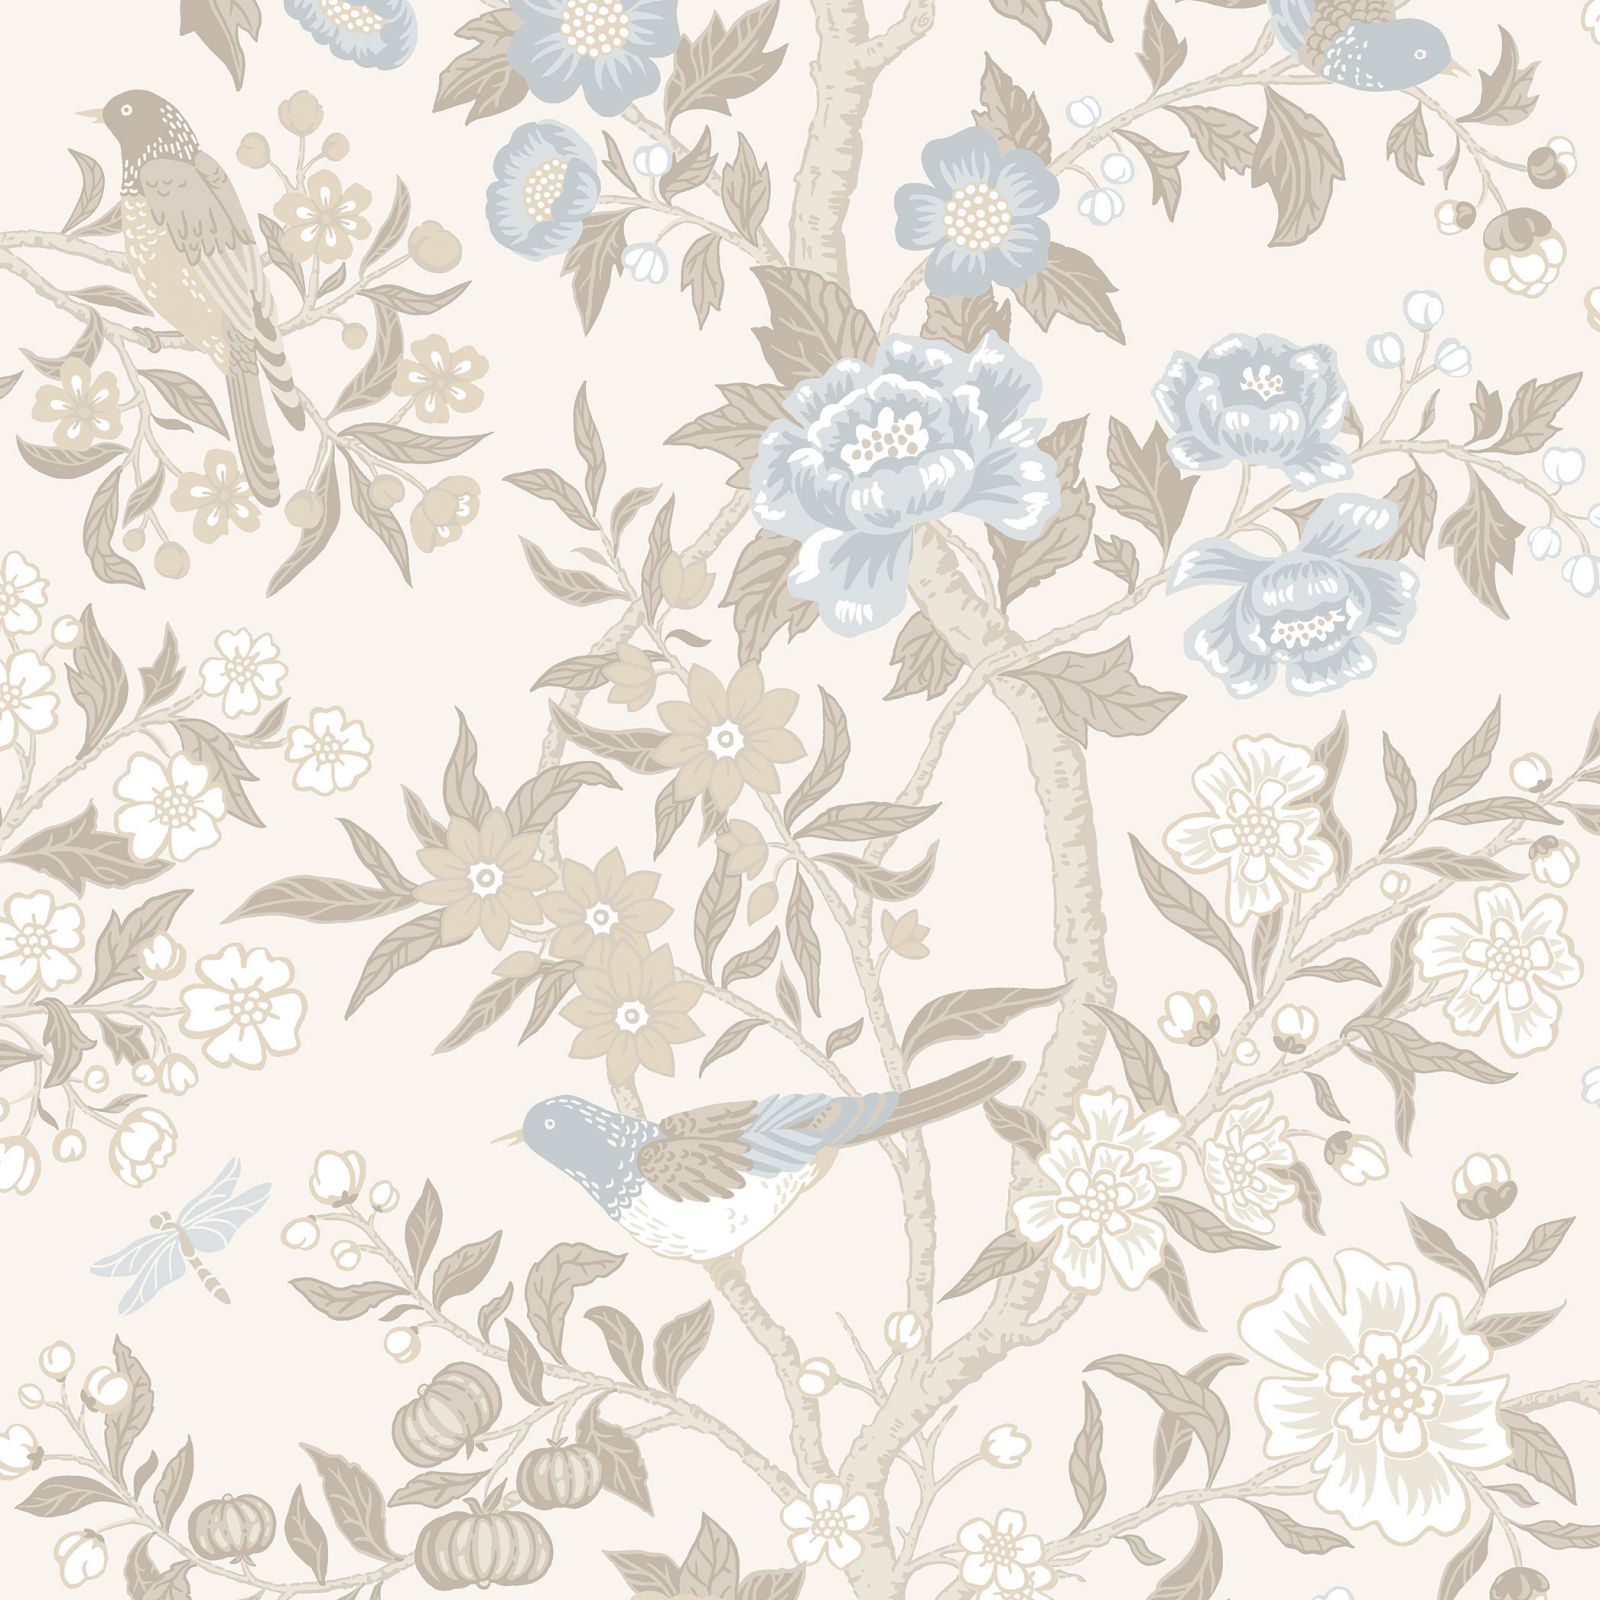 Wallpaper With Bird And Flower Design Flowered And Botanical Papers